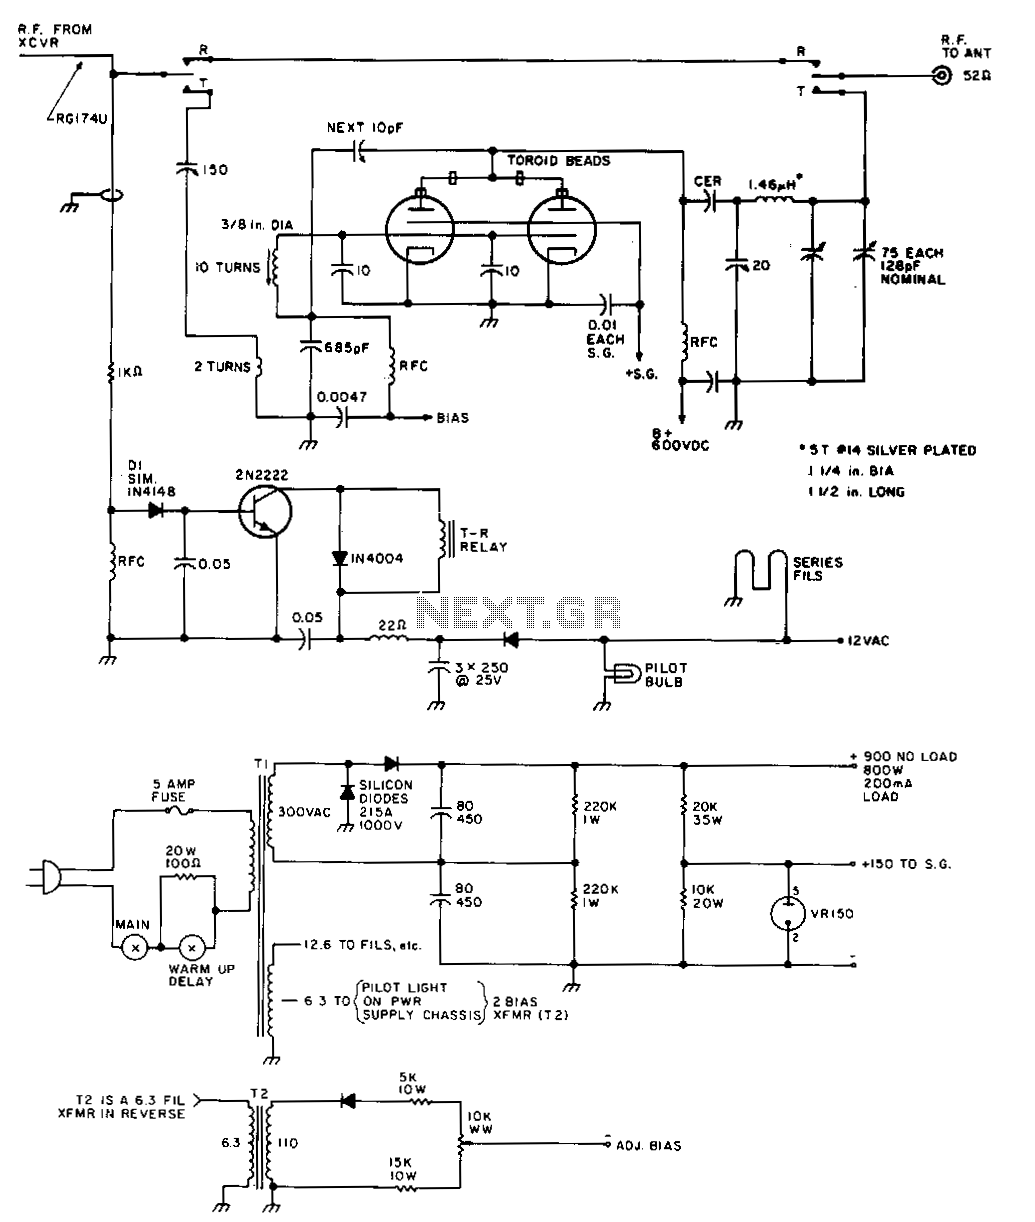 New Circuits Page 191 Lm380 Single National Forms Simple Amplifier With Tone And 29mhz